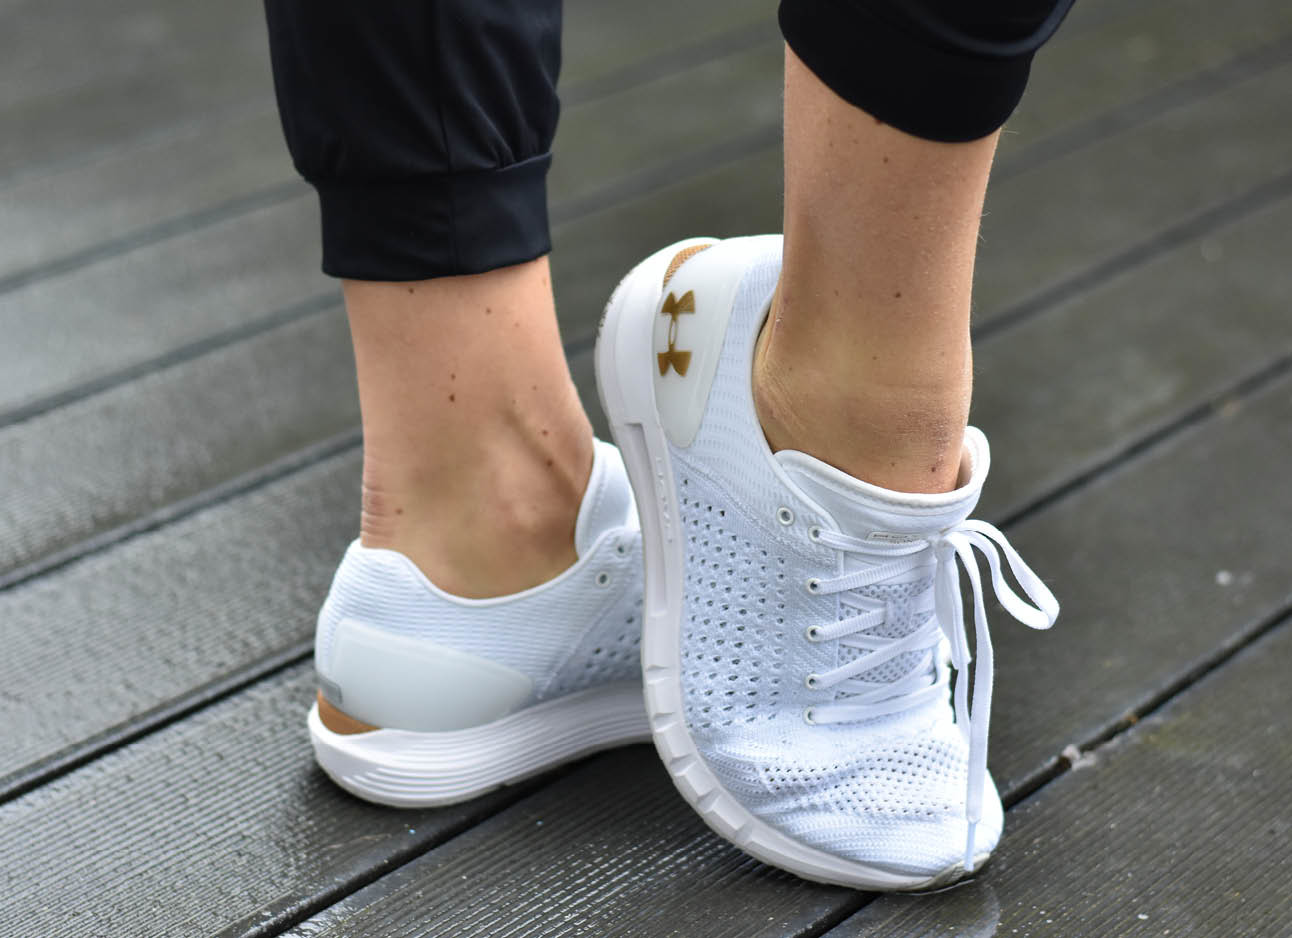 Look of the day Simone Olivia in Under Armour Sneakers